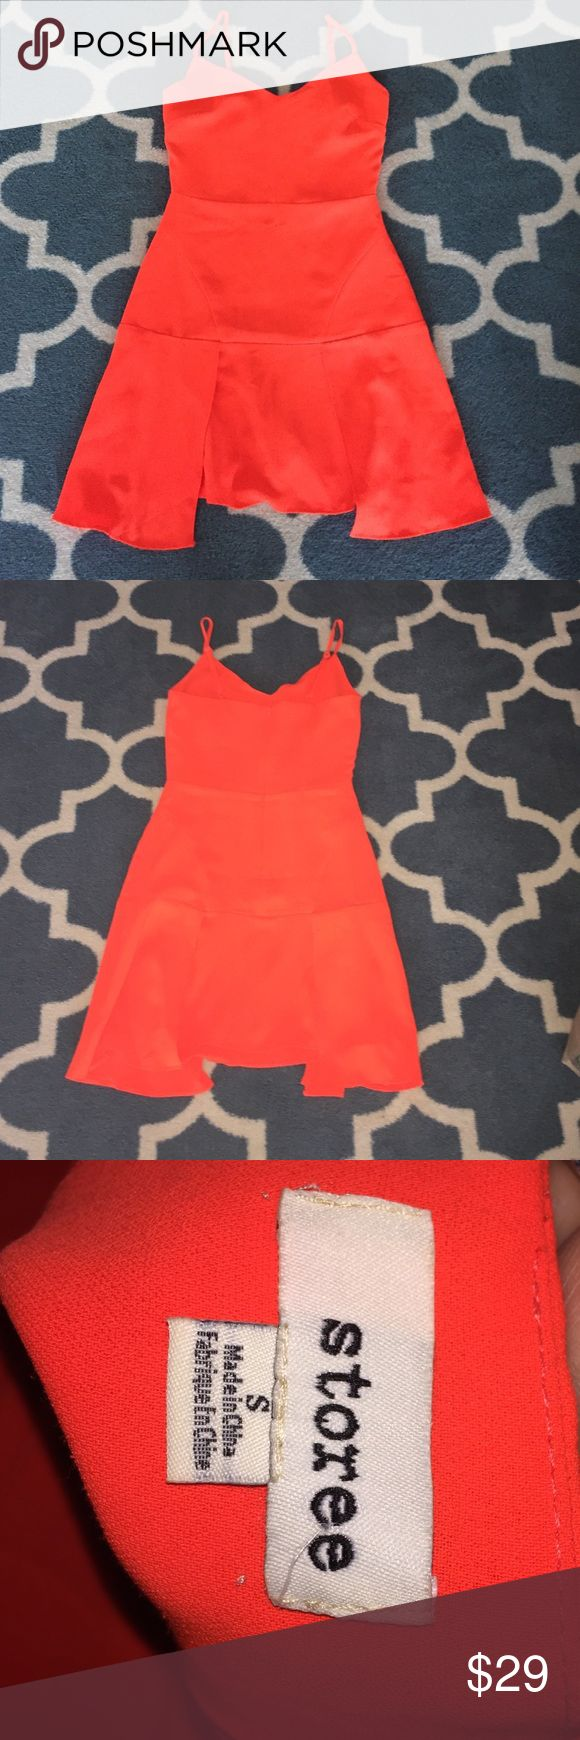 Gorgeous bright orange dress Storee S Adorable dress with spaghetti straps. Stand out or cover with a contrasting cardigan. storee Dresses Mini